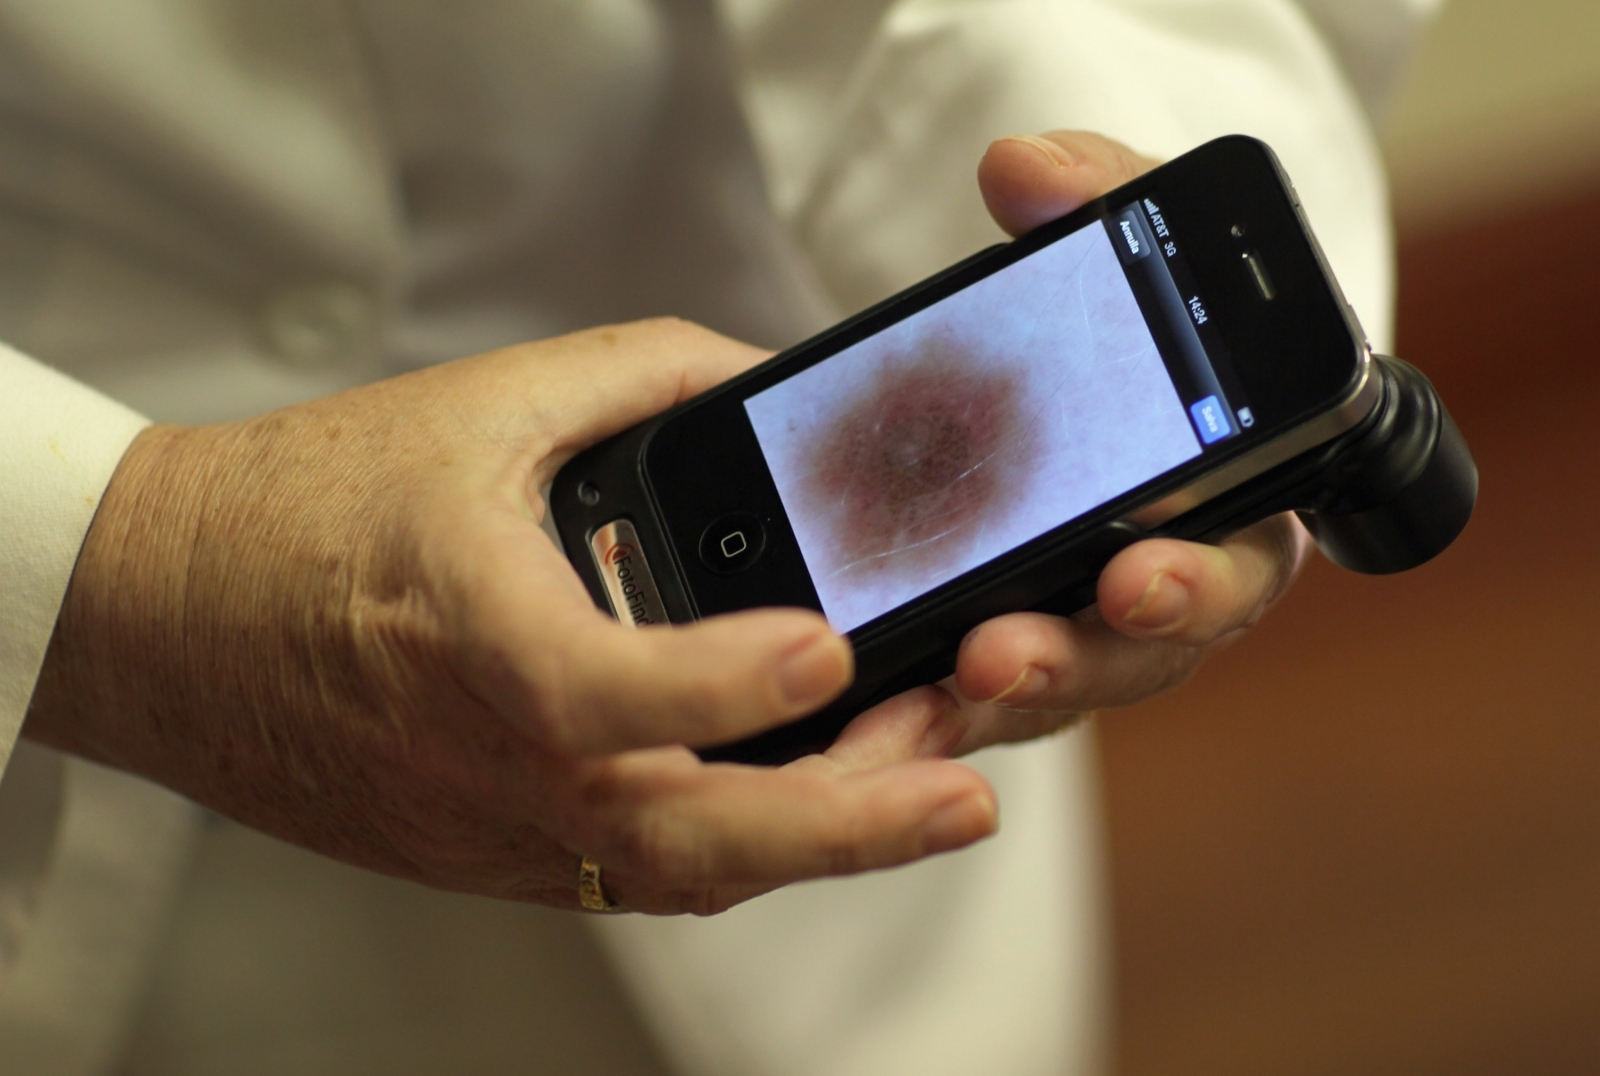 Kentucky Nurse's Viral Selfie Spiked Searches About Skin Cancer, Research Says